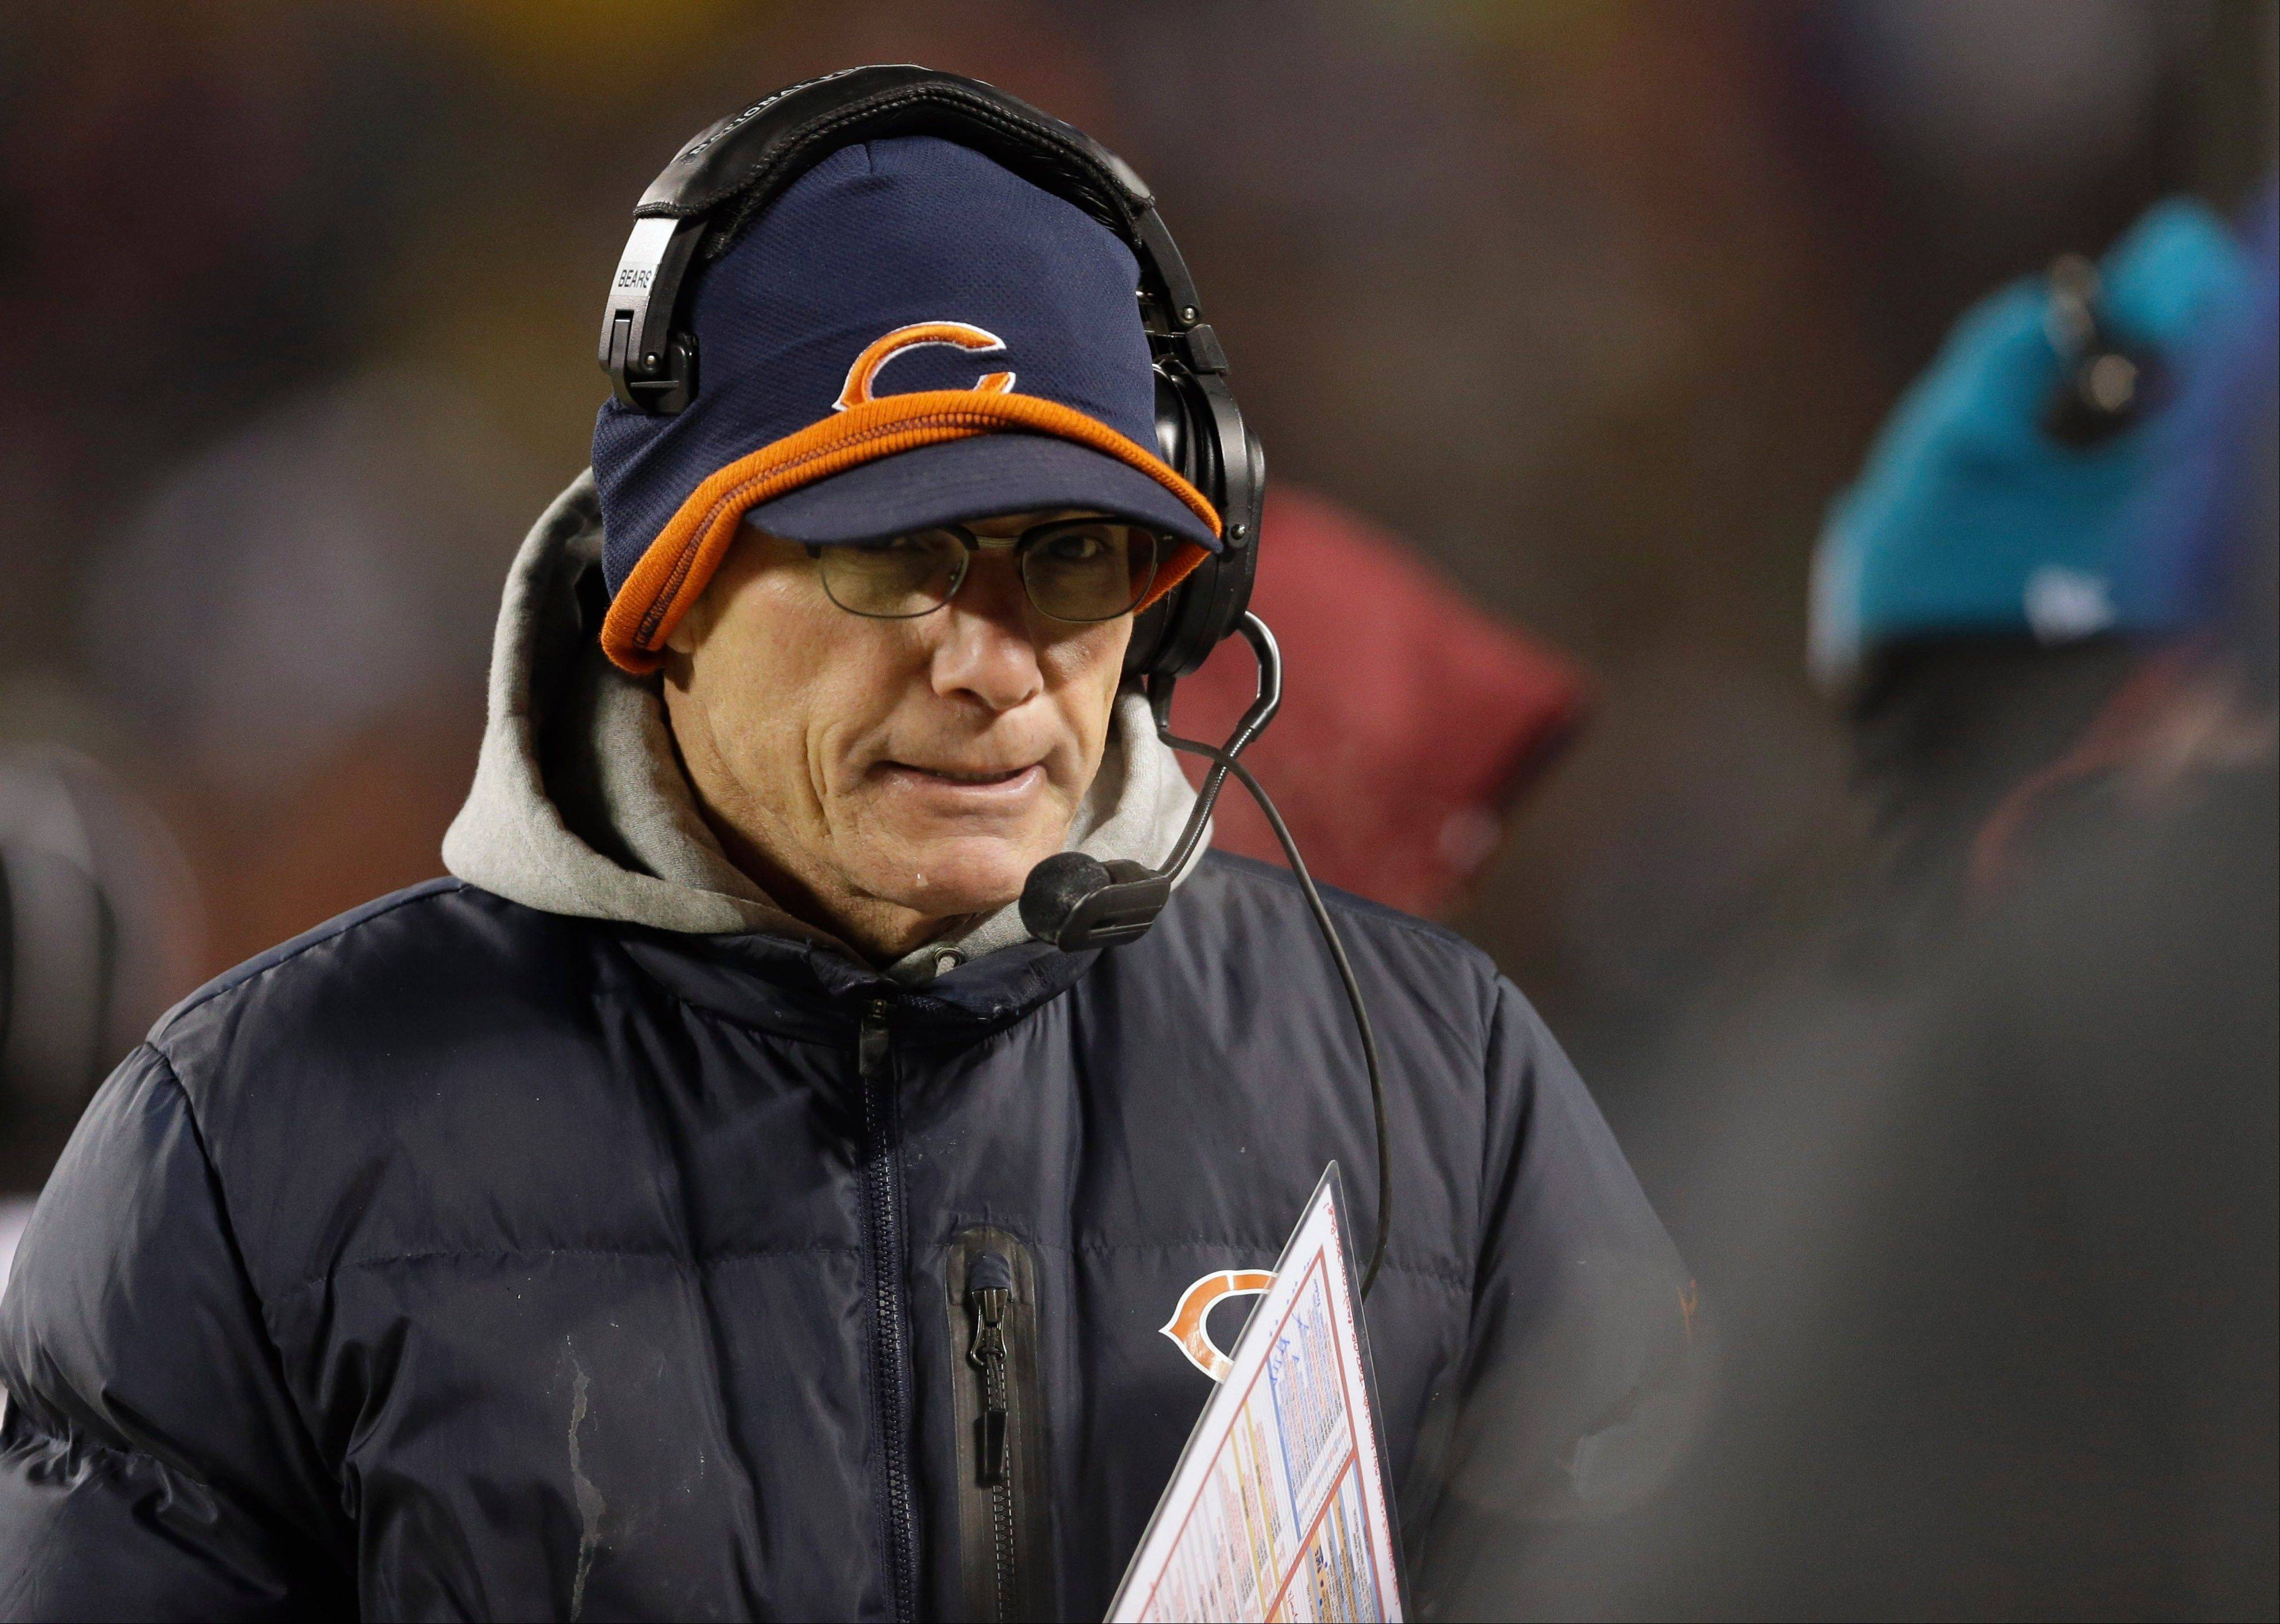 Bears coach Marc Trestman, who has worked wonders with backup quarterback Josh McCown, walks on the sidelines during the second half of Monday night's victory over the Dallas Cowboys.